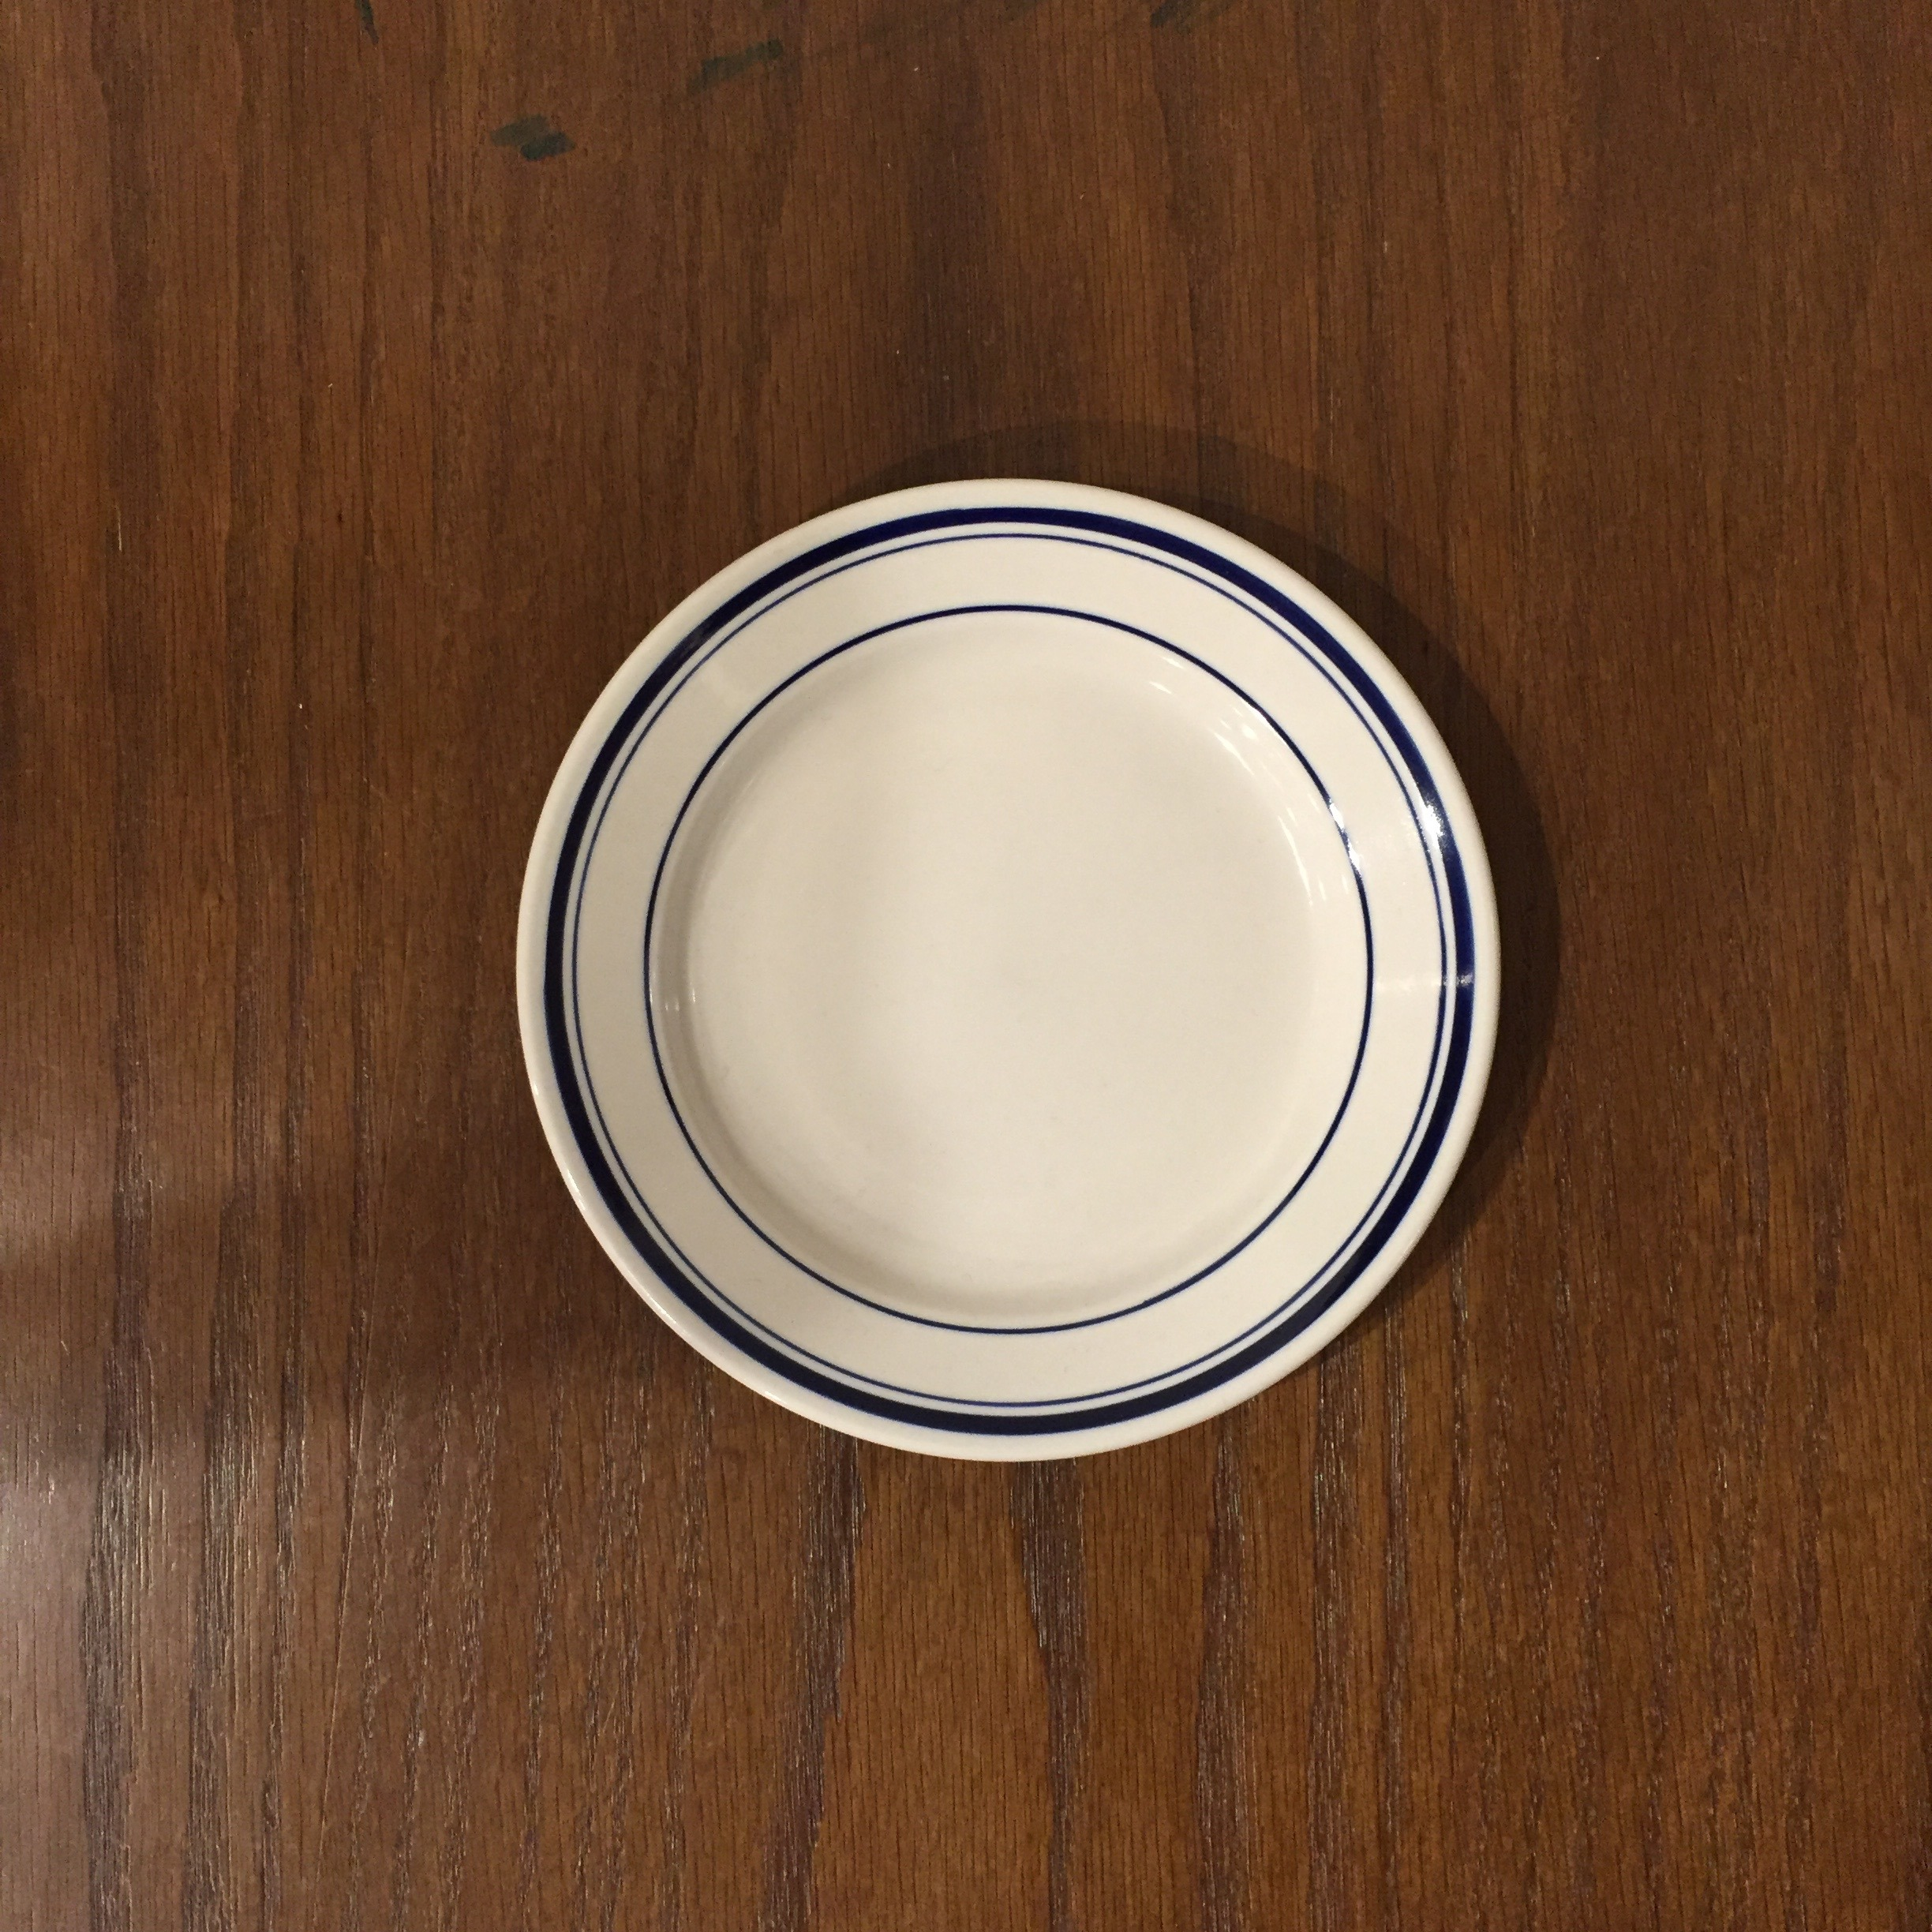 AMERICAN DINER WARE SMALL PLATE